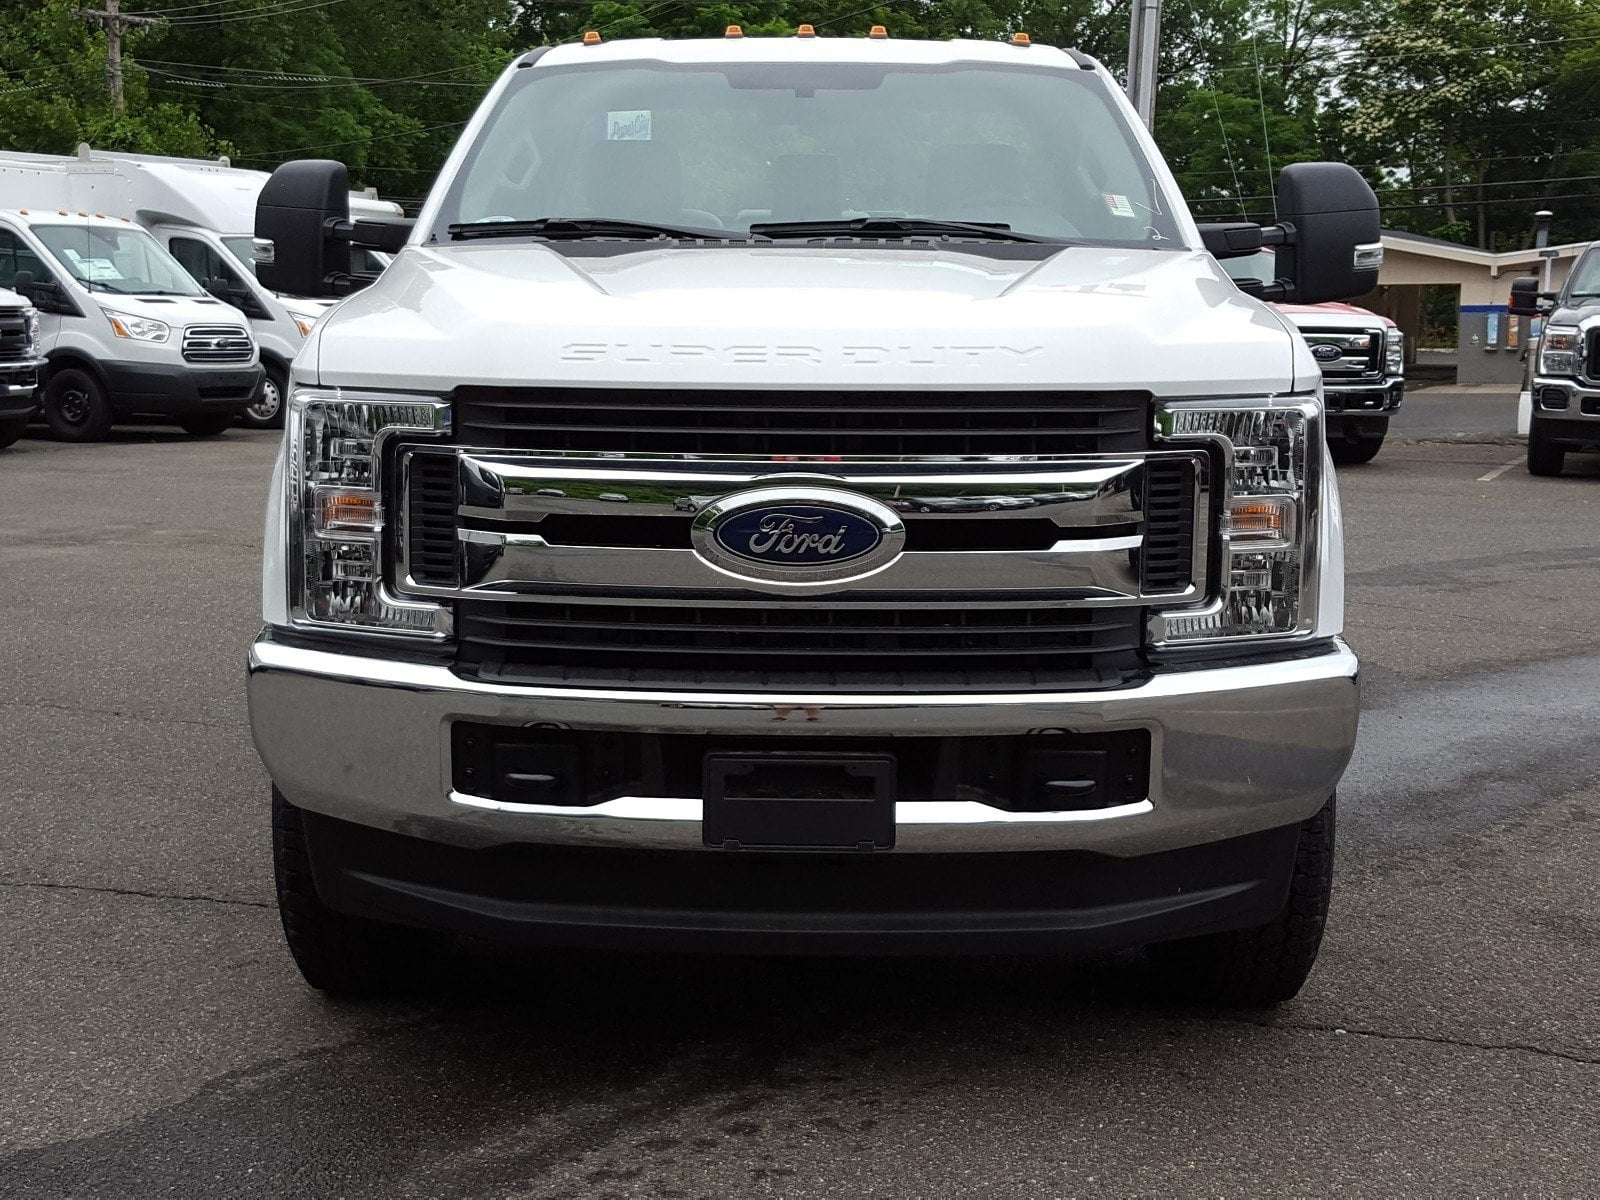 2017 F-350 Regular Cab 4x4, Pickup #Q7590 - photo 8